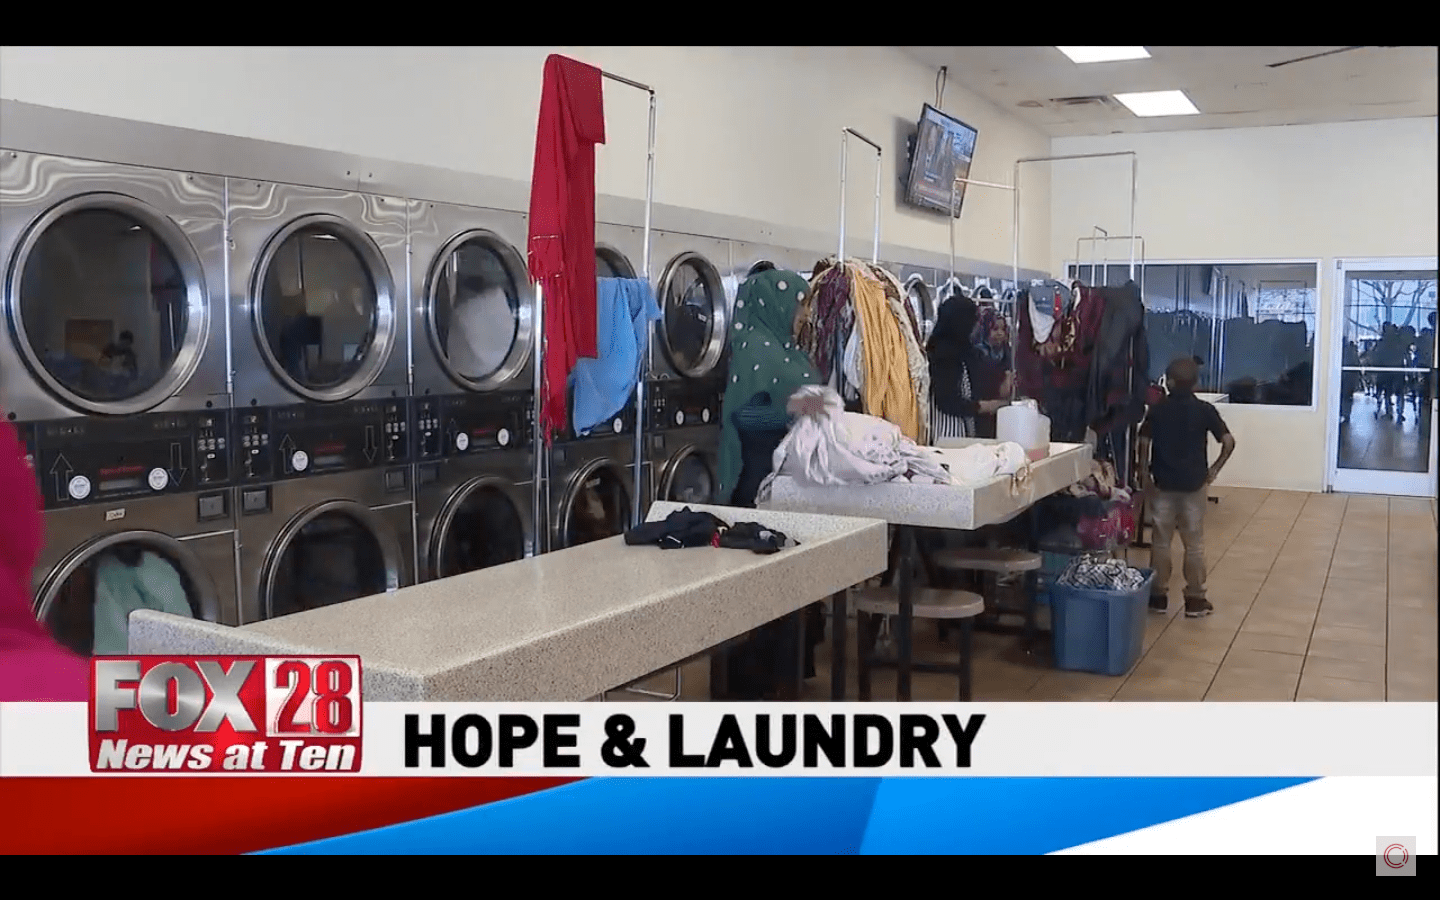 Fox 28 Columbus – Laundry Project Story